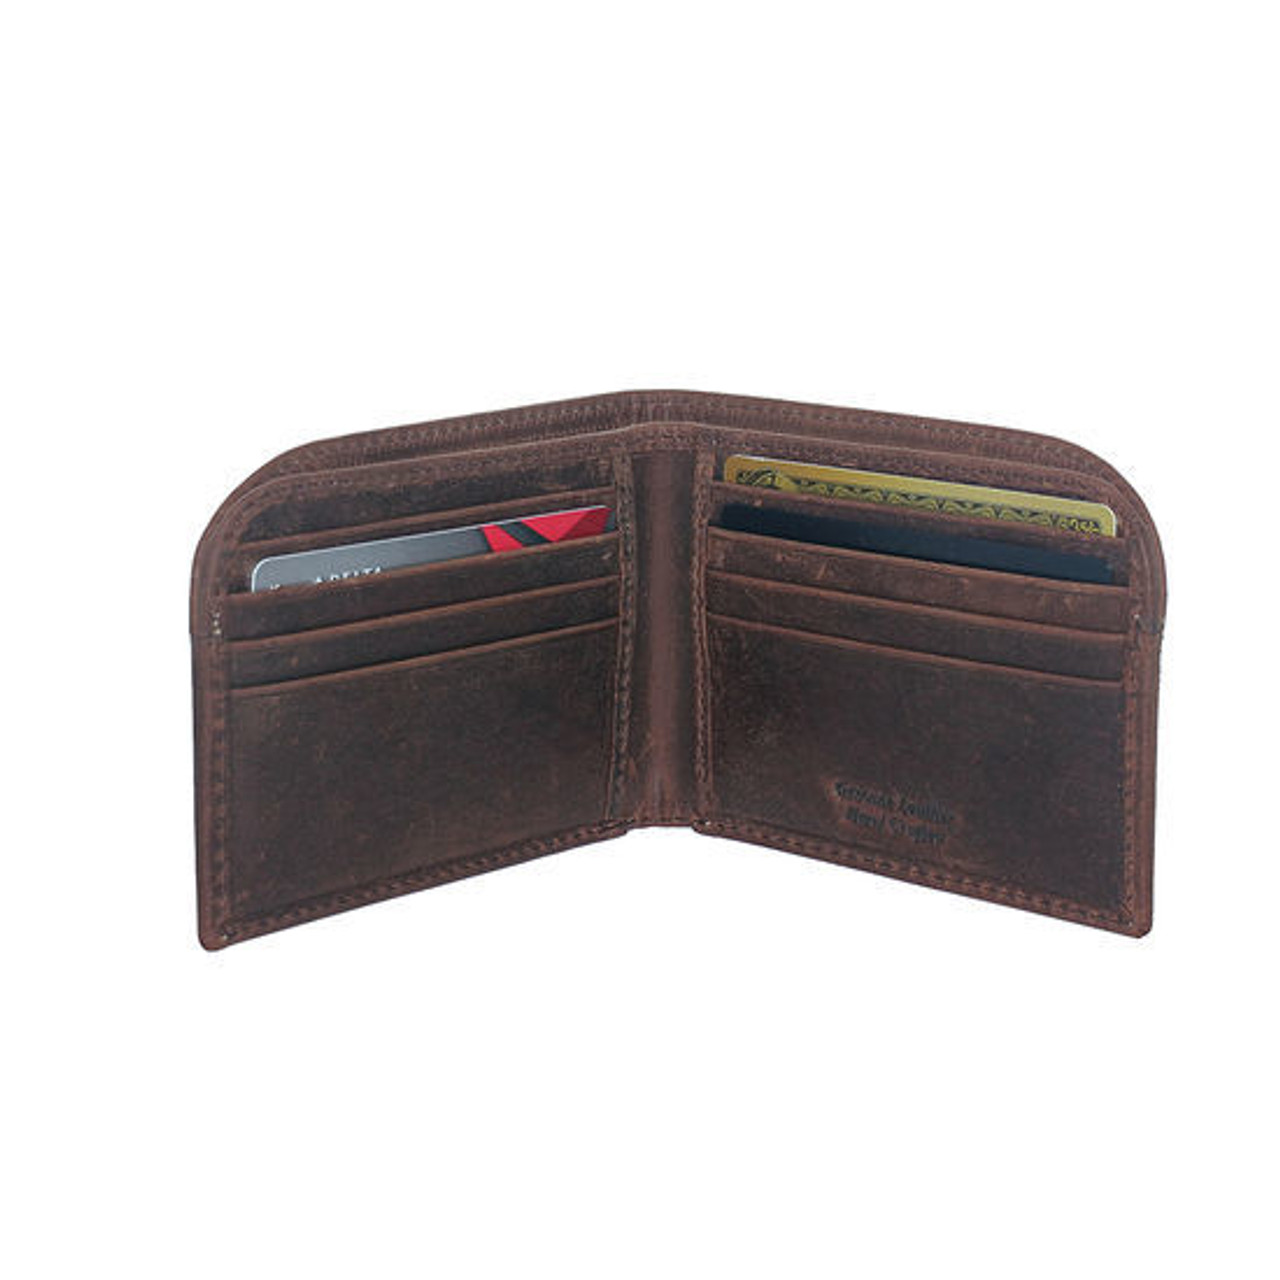 Men's Quality Leather Wallets